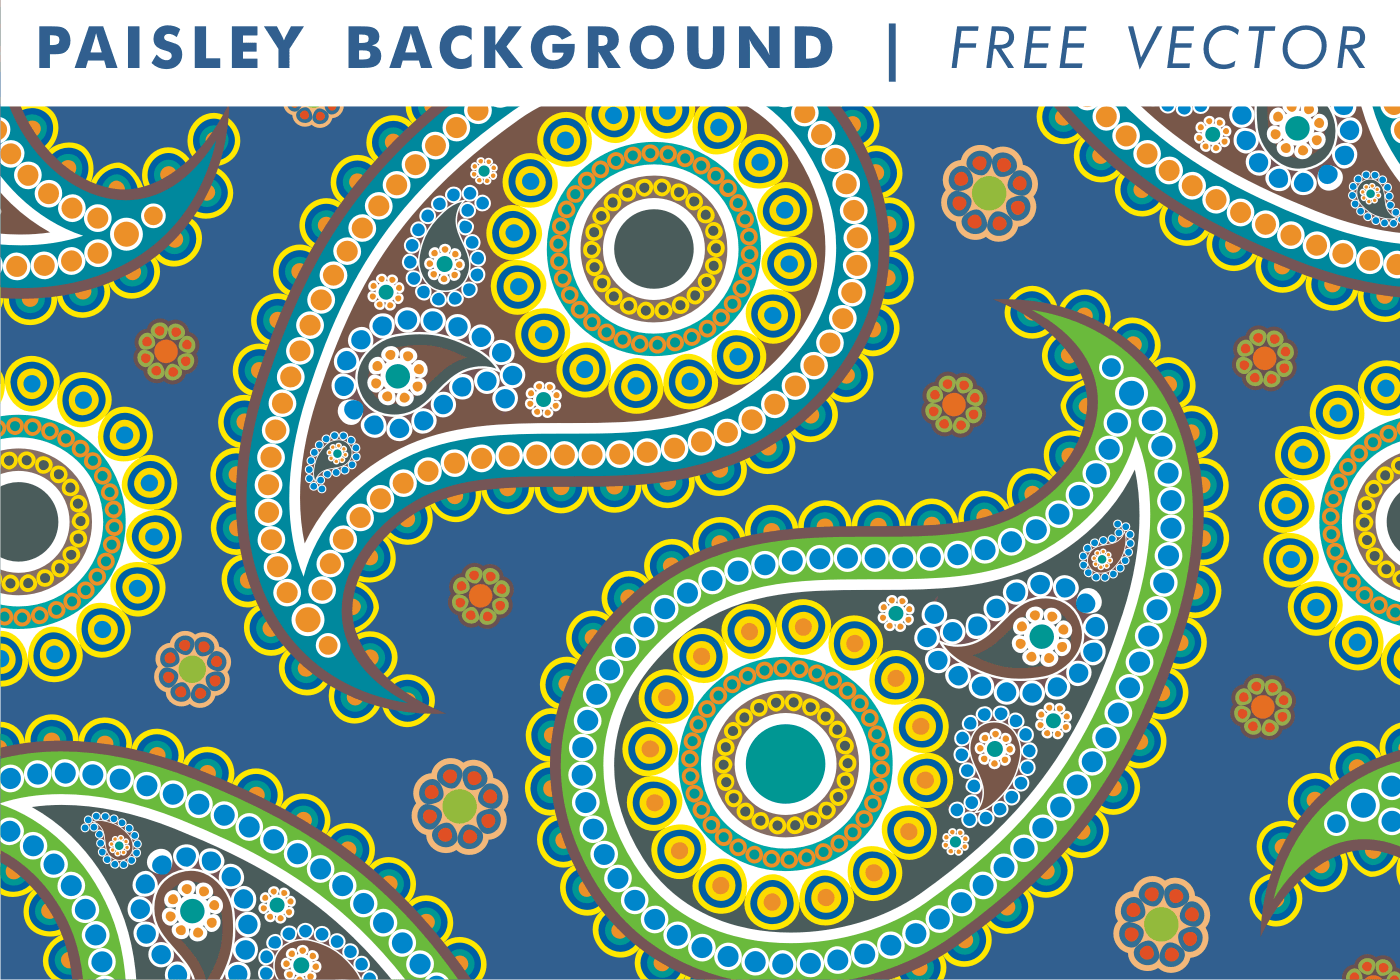 Vector Paisley Pattern Free - (9527 Free Downloads)